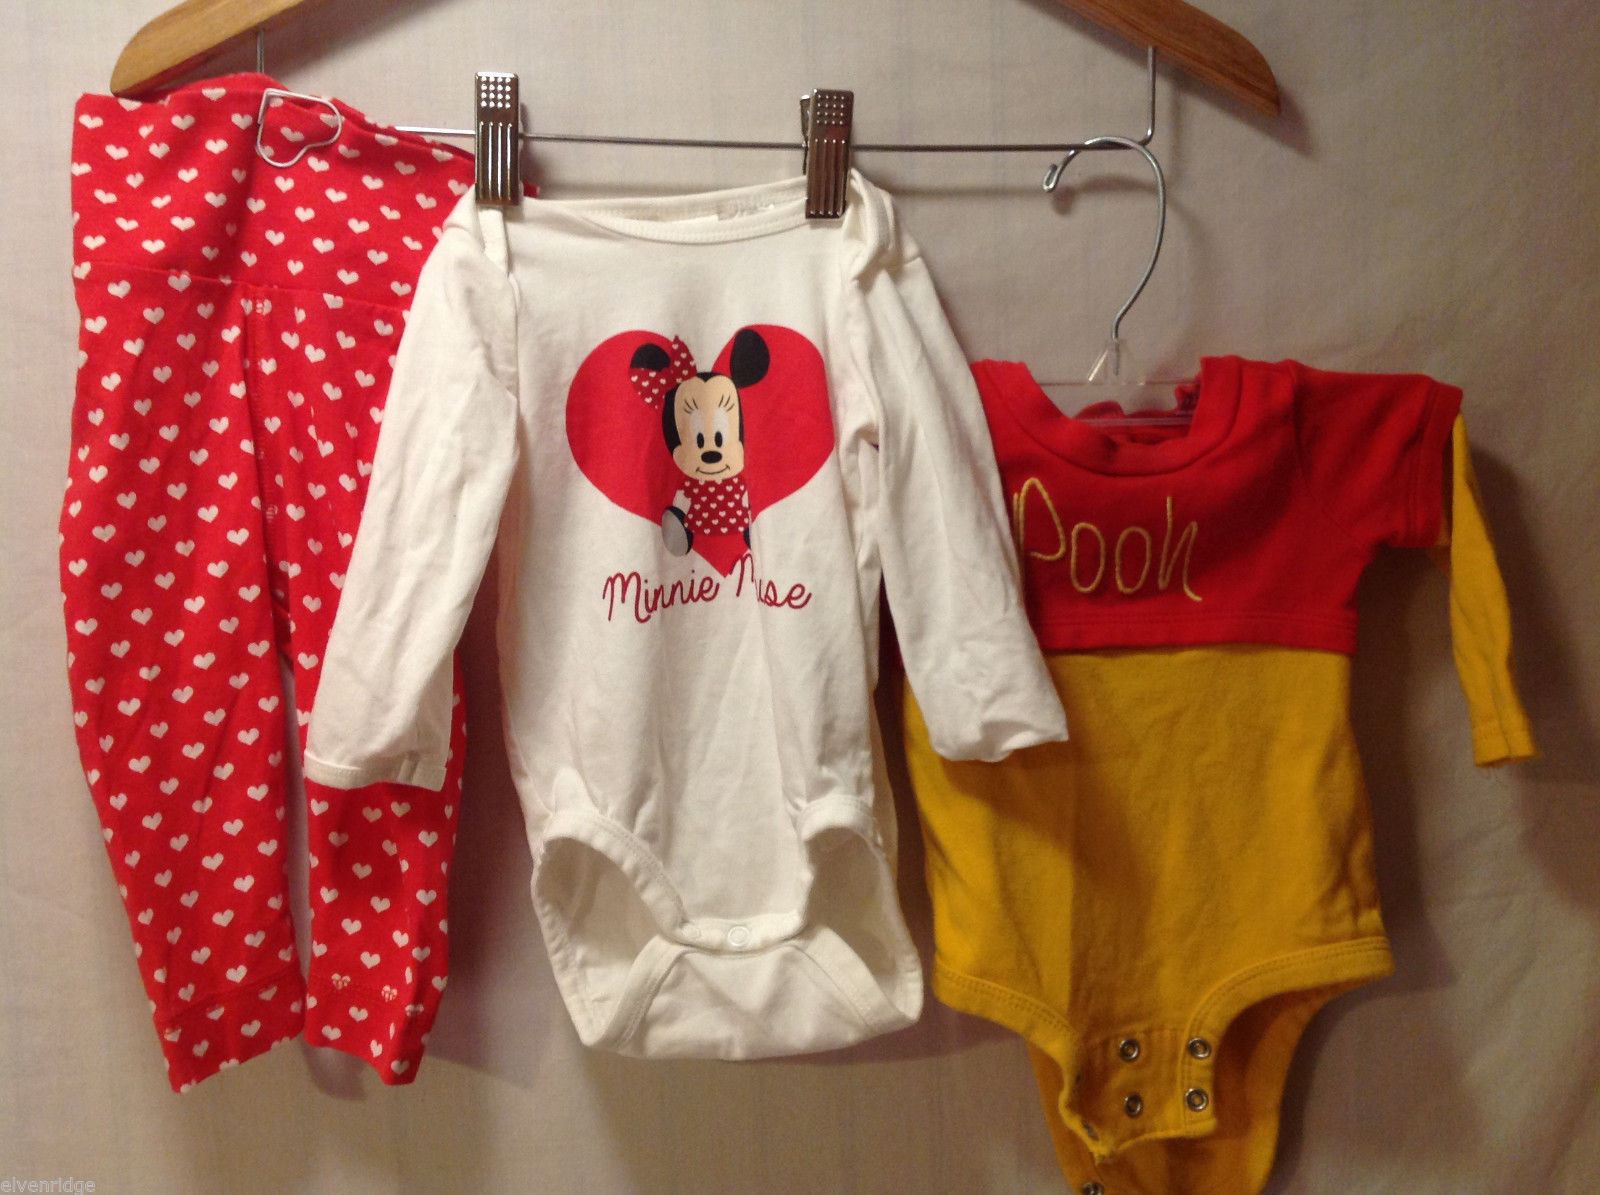 H&M Baby POOH BEAR and MINNIE Mouse DISNEY Outfits 100% Cotton, Size 3-6 Months